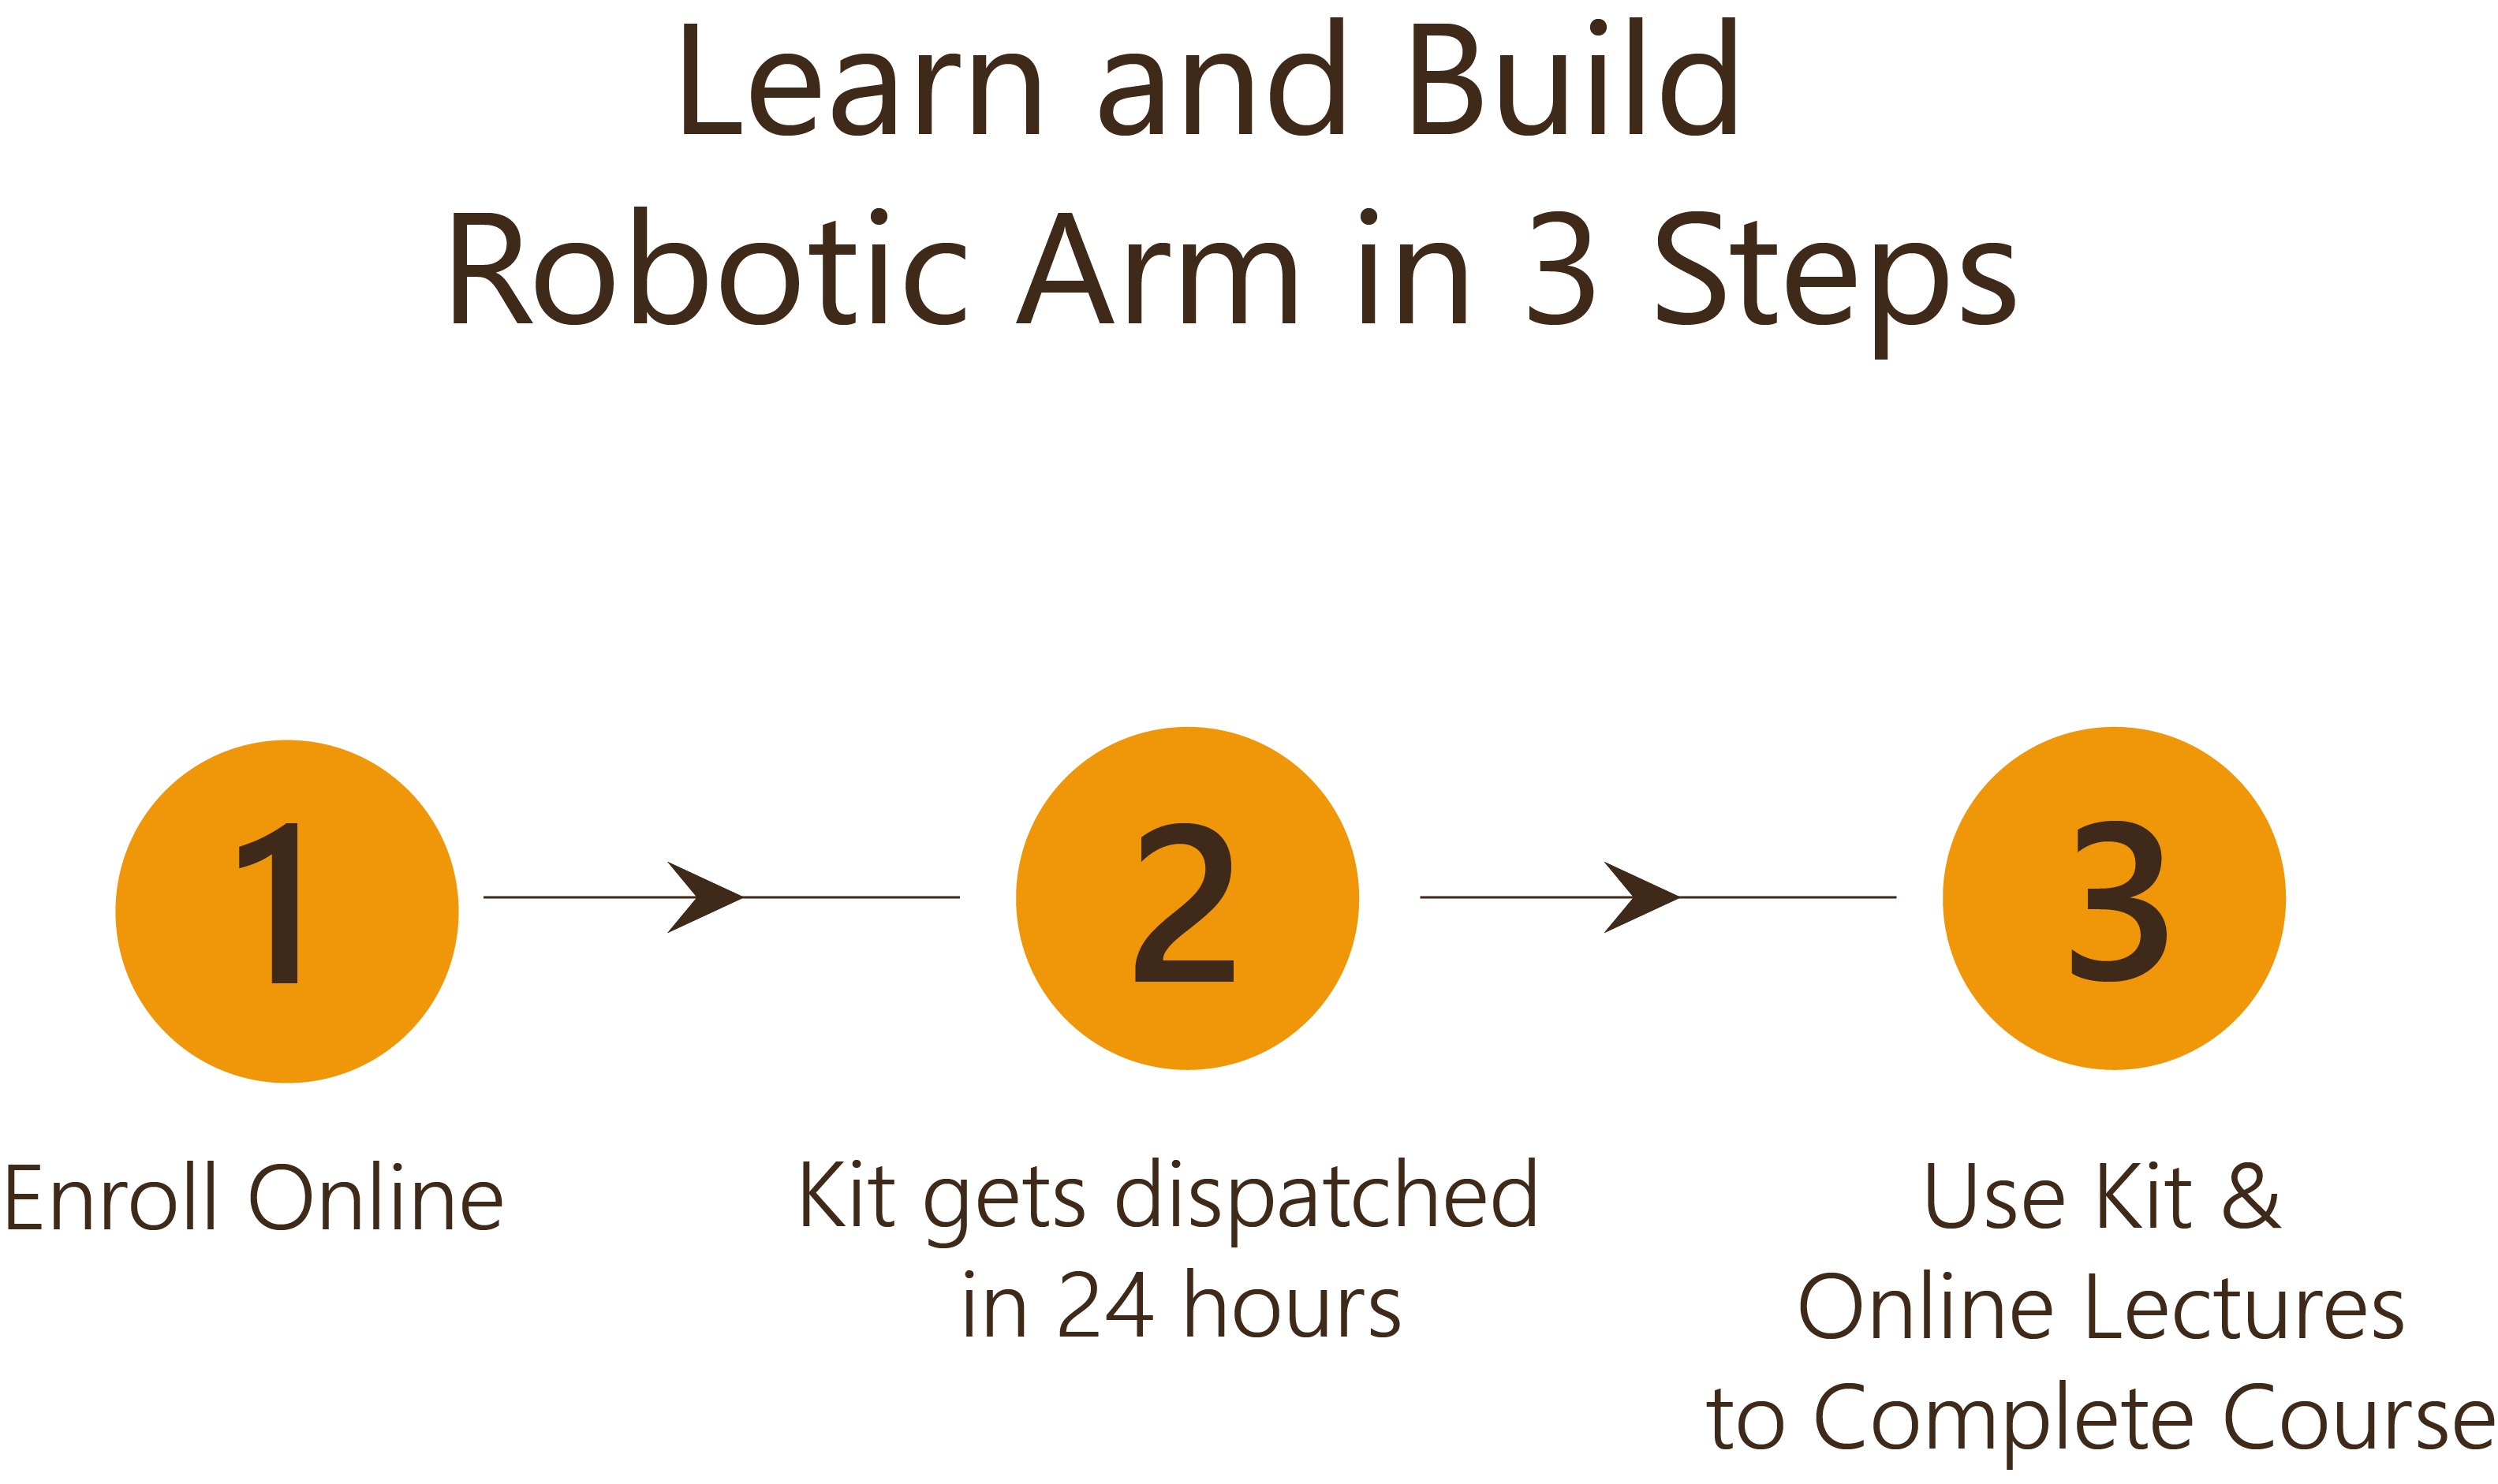 Learn and Build Robotic Arm in 3 Steps